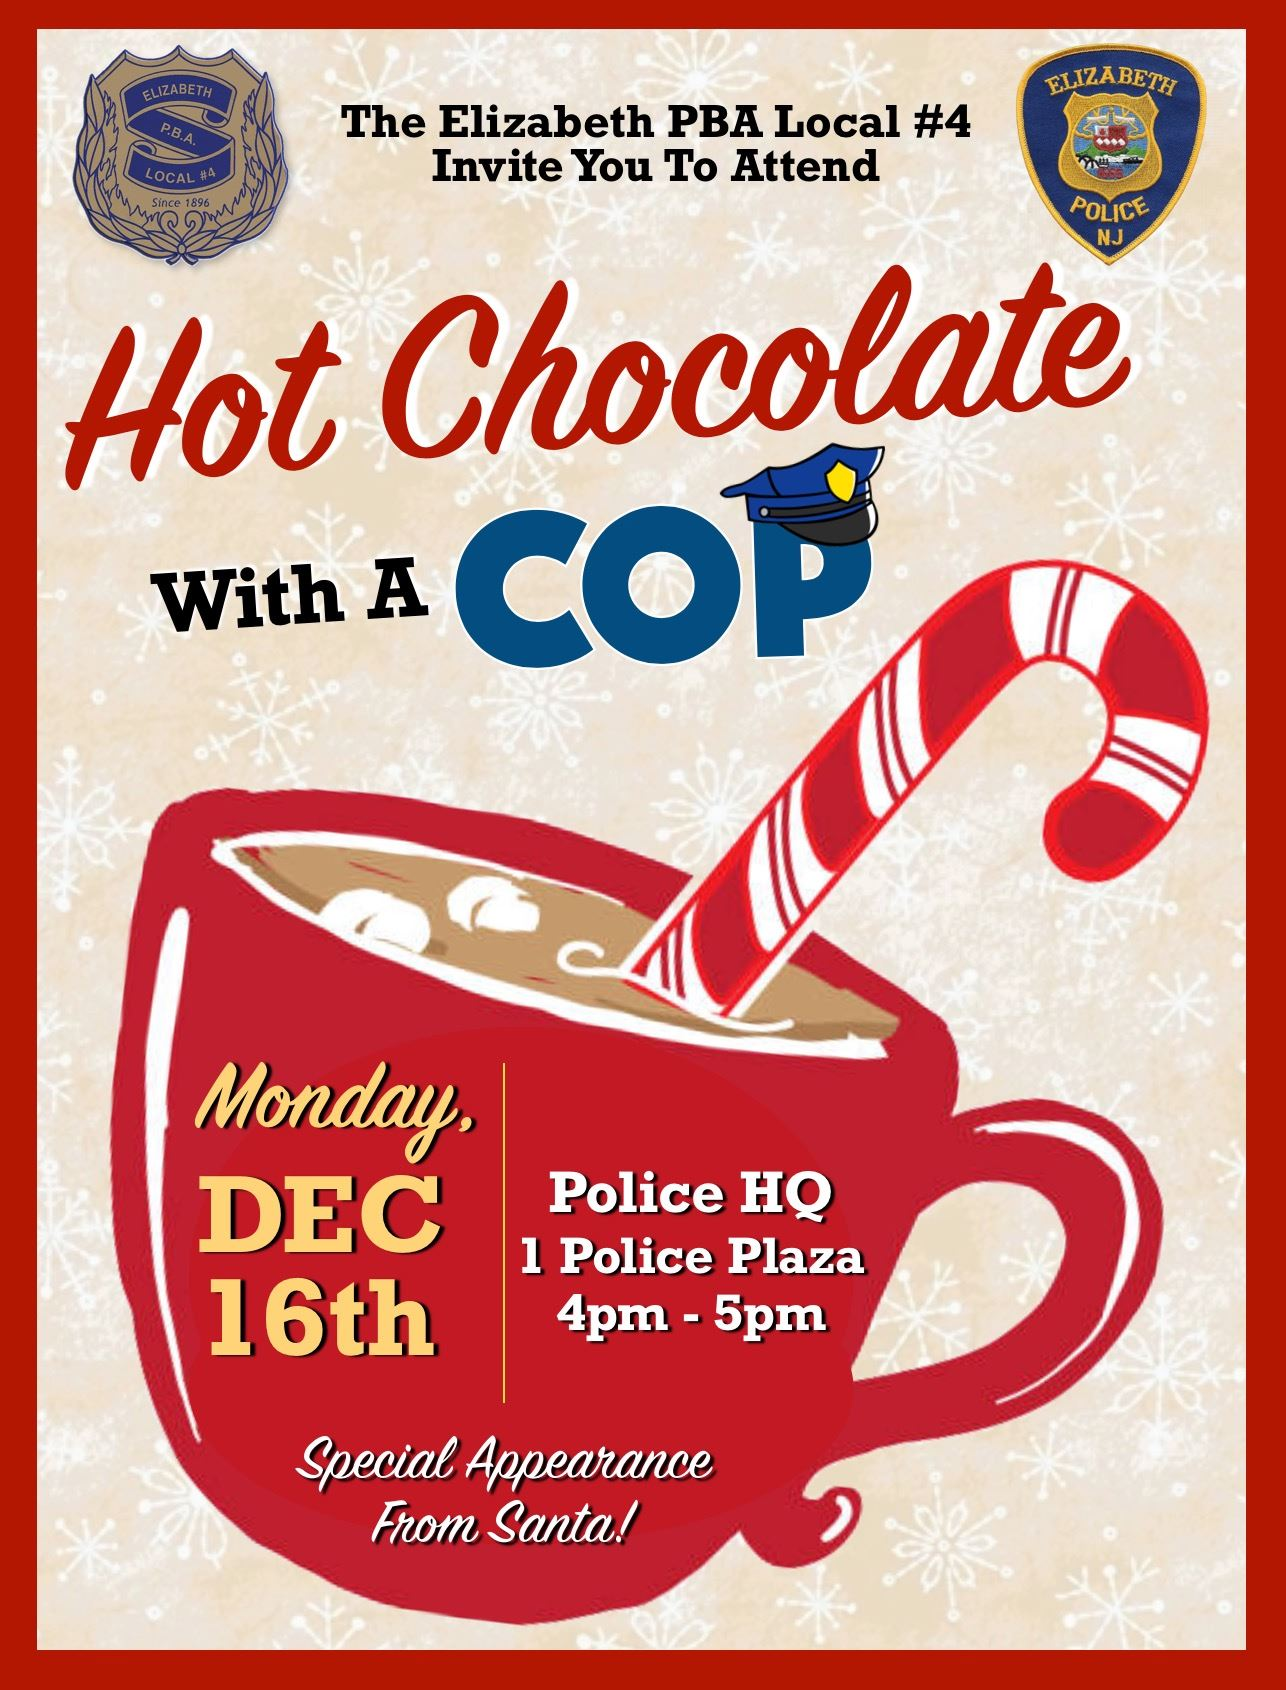 Hot Chocolate with a Cop